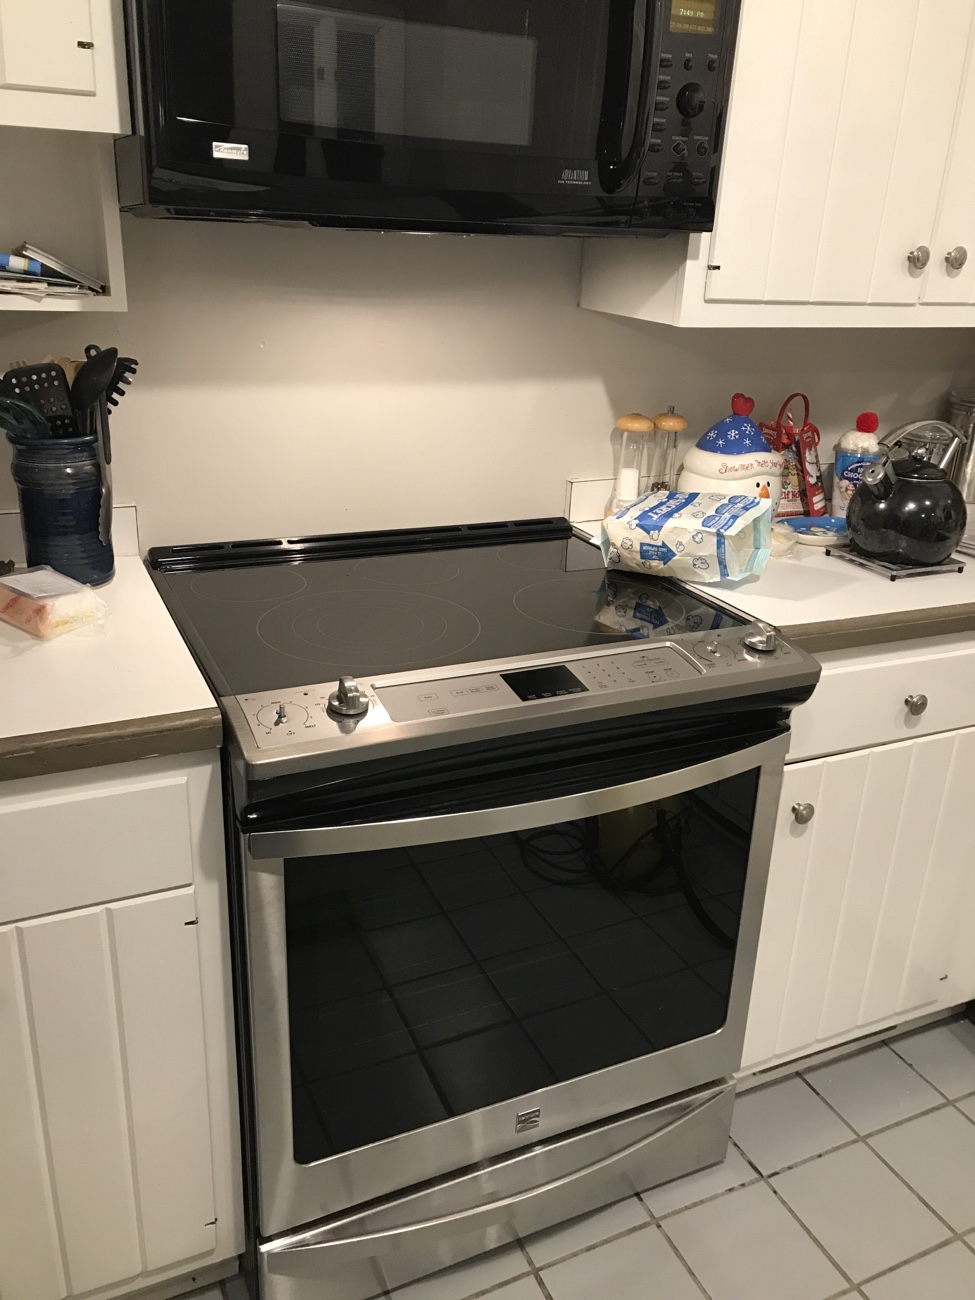 Kitchen: Baby Steps and Steam-Cleaning 2